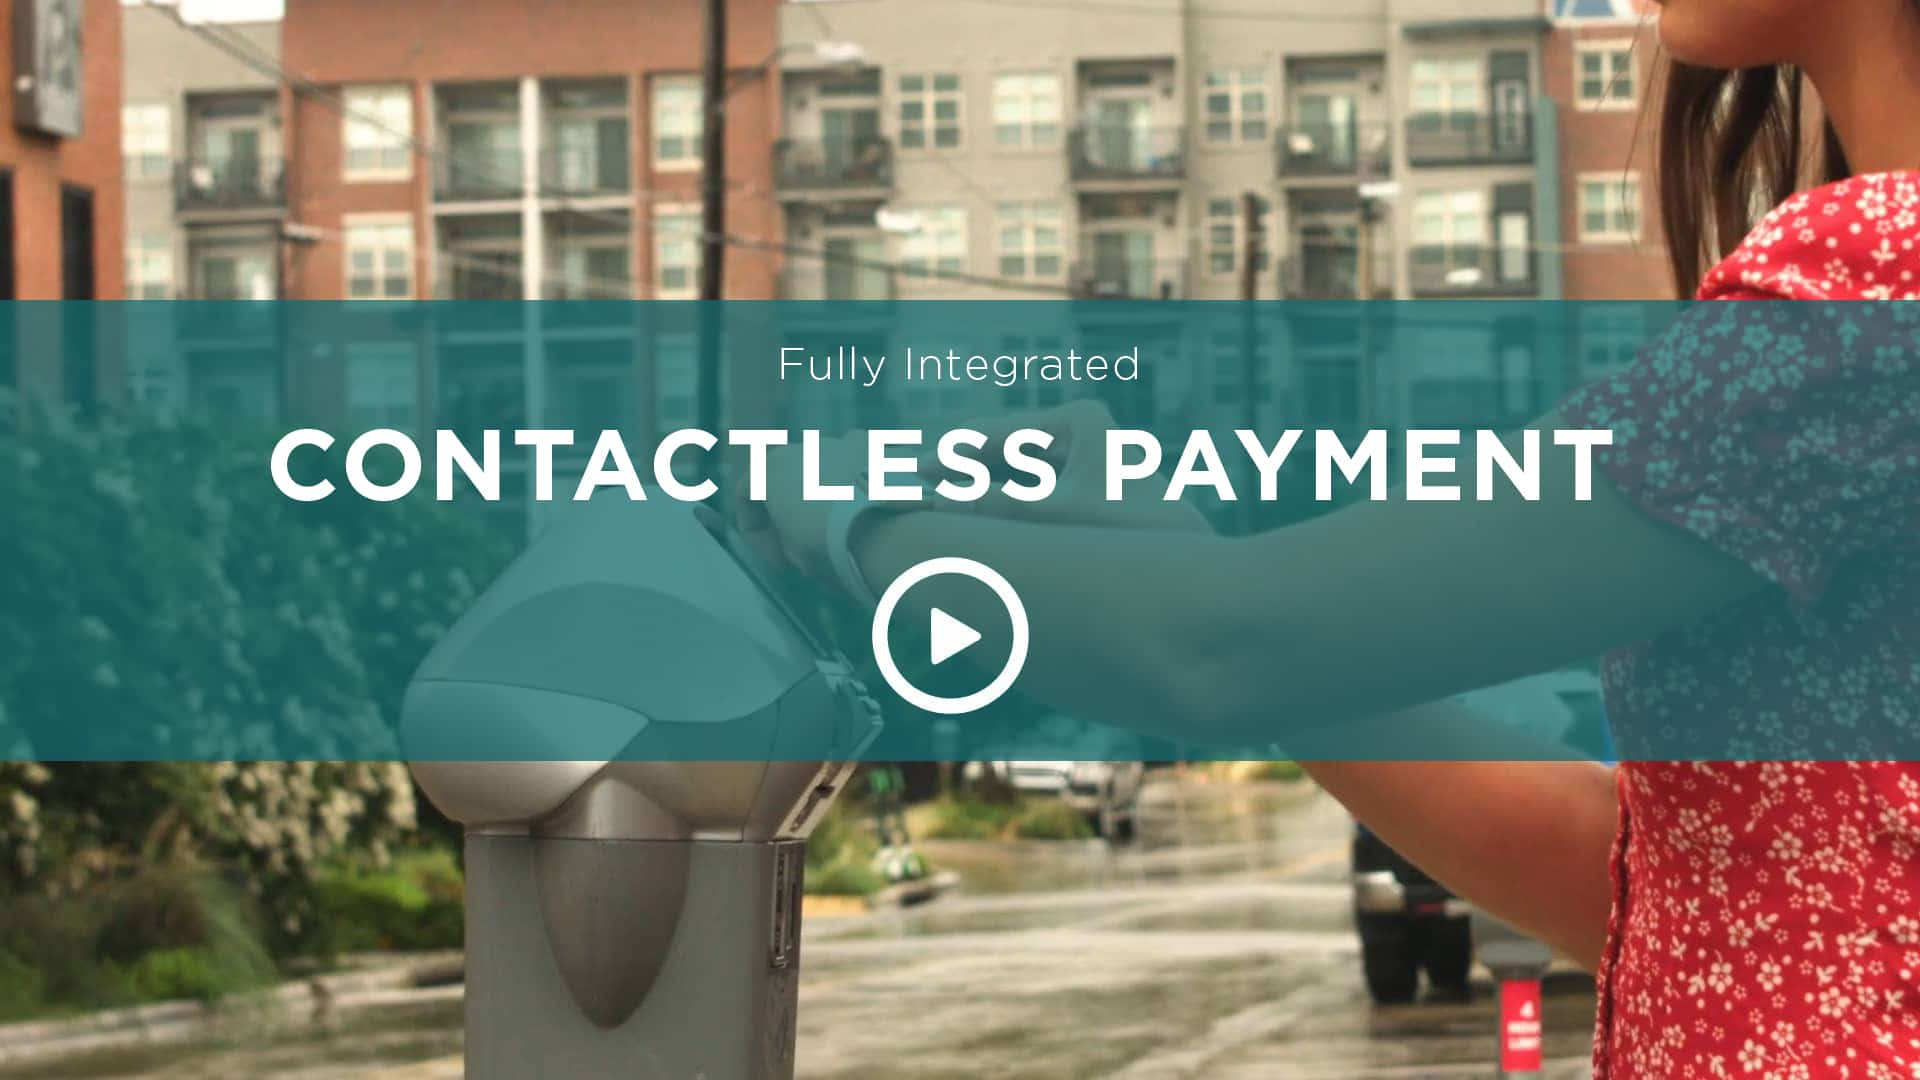 Fully Integrated Contactless Payment